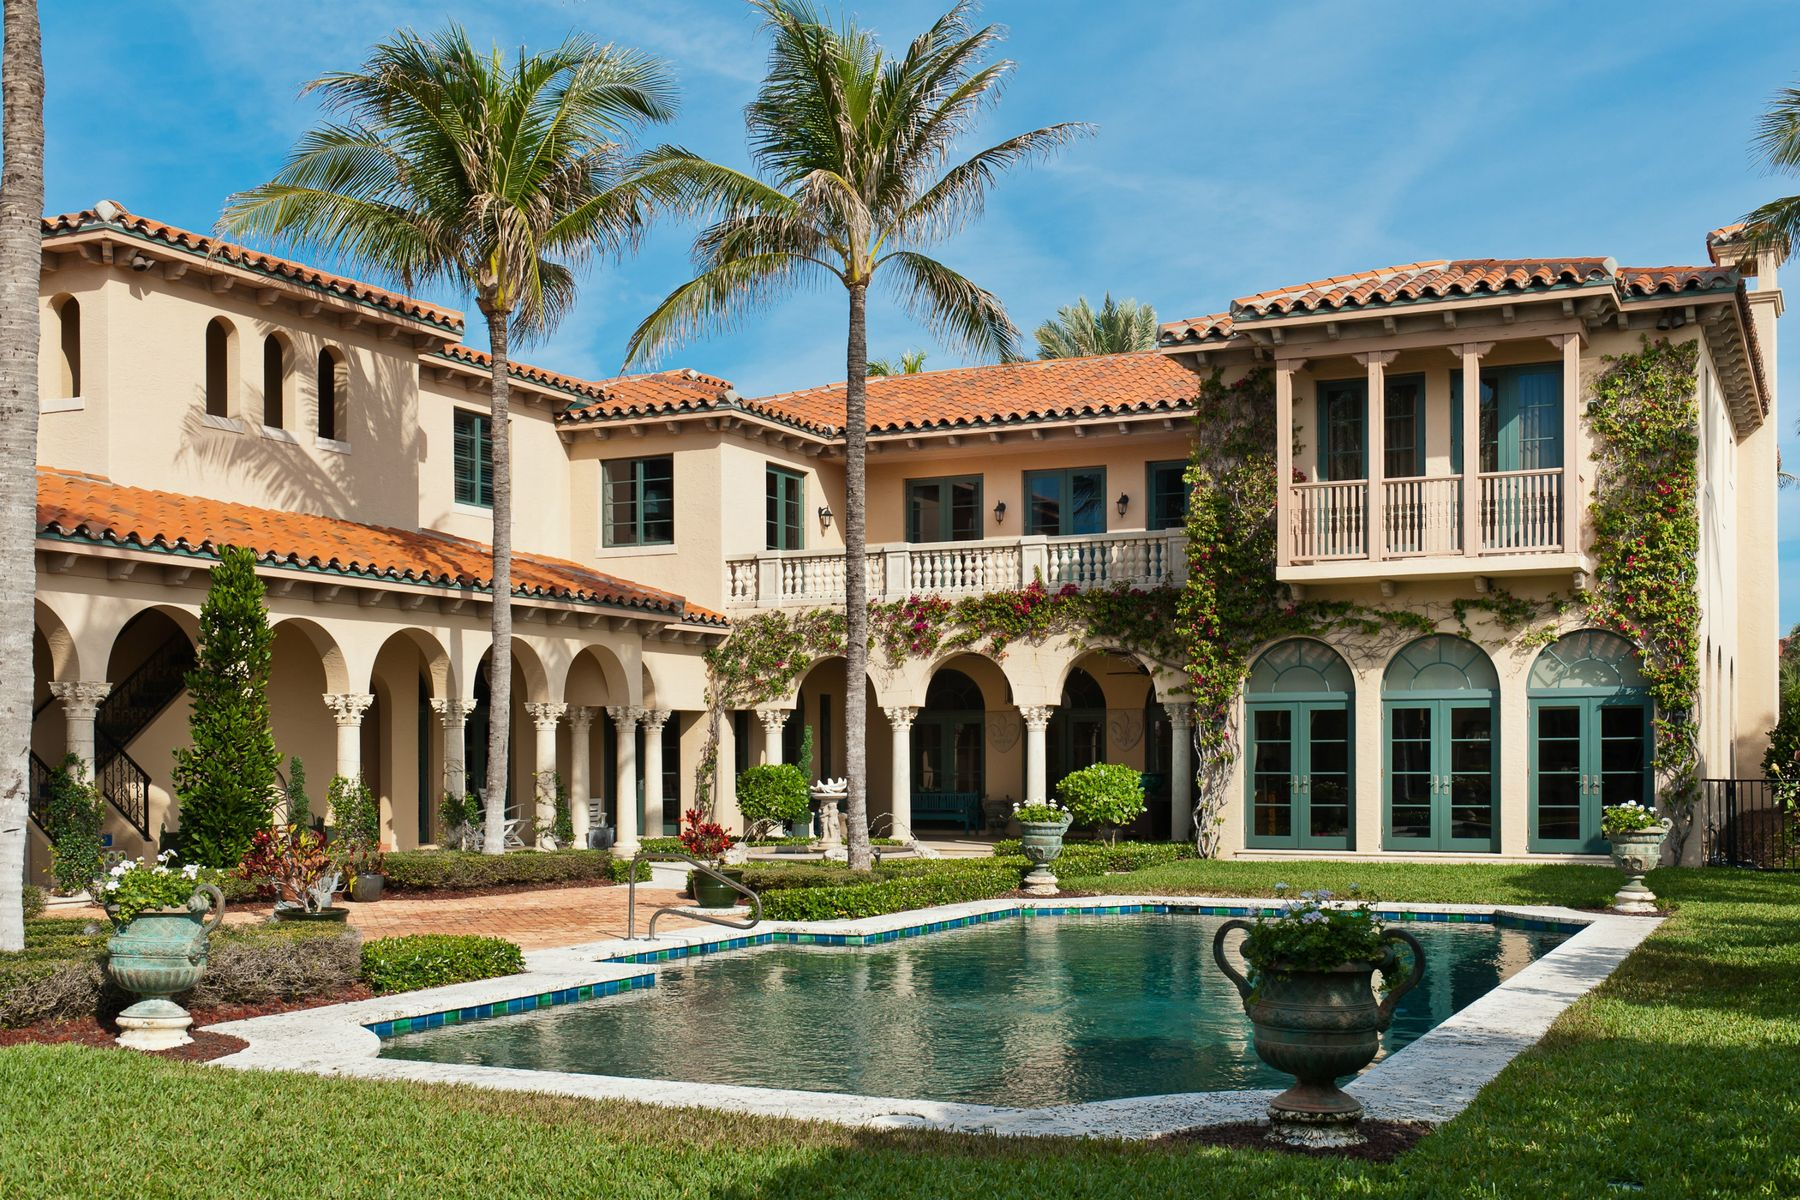 Single Family Homes for Sale at Unsurpassed Elegance 110 Clarendon Ave Palm Beach, Florida 33480 United States